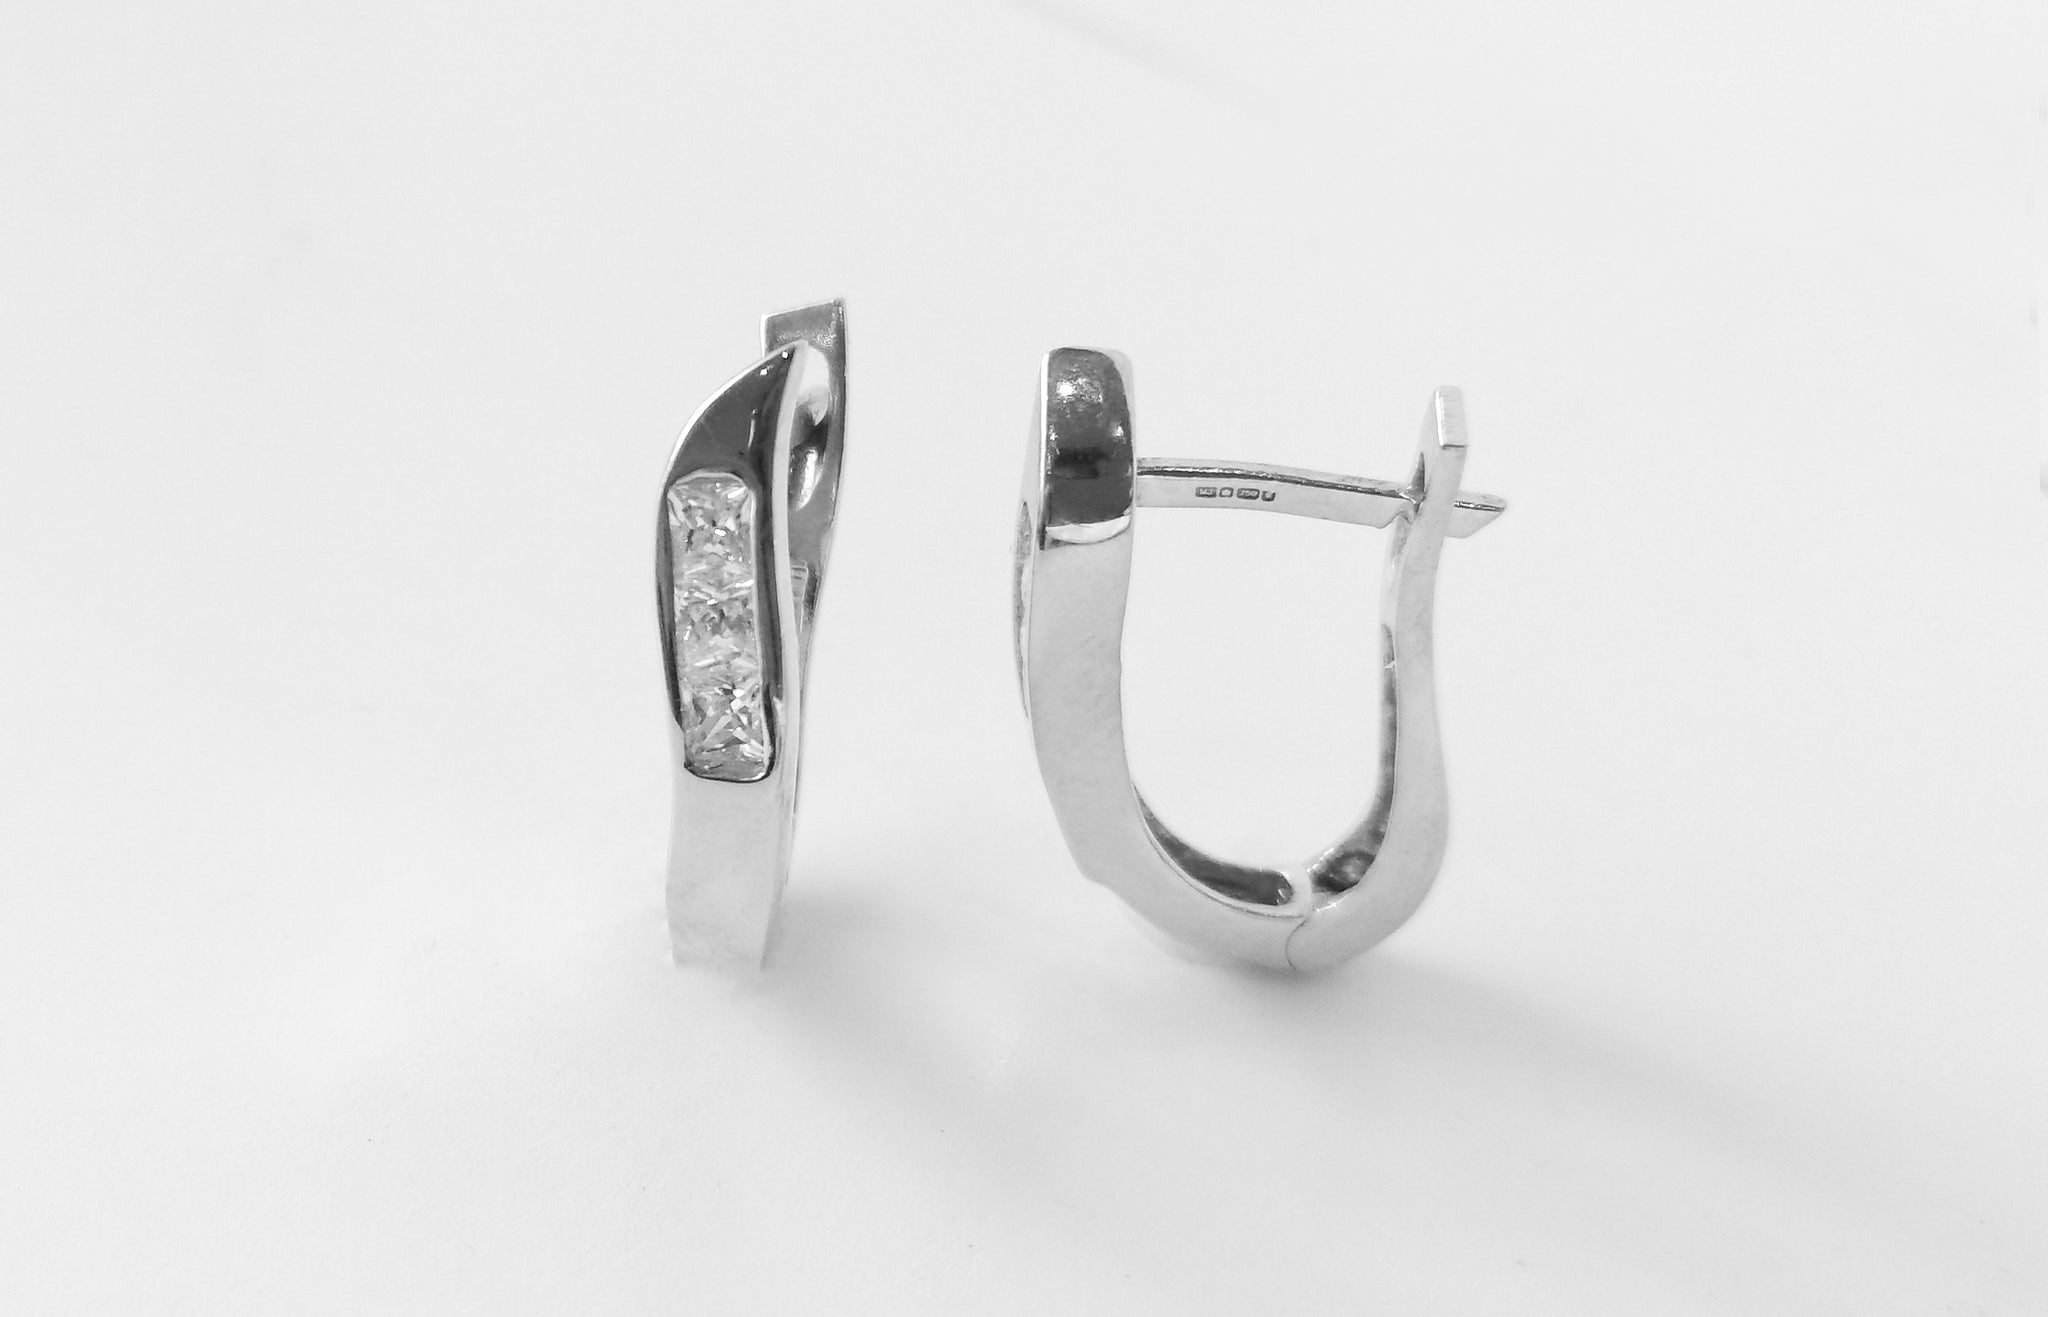 18ct White Gold Hoop Earrings set with Cubic Zirconias (4.7g) E-3882